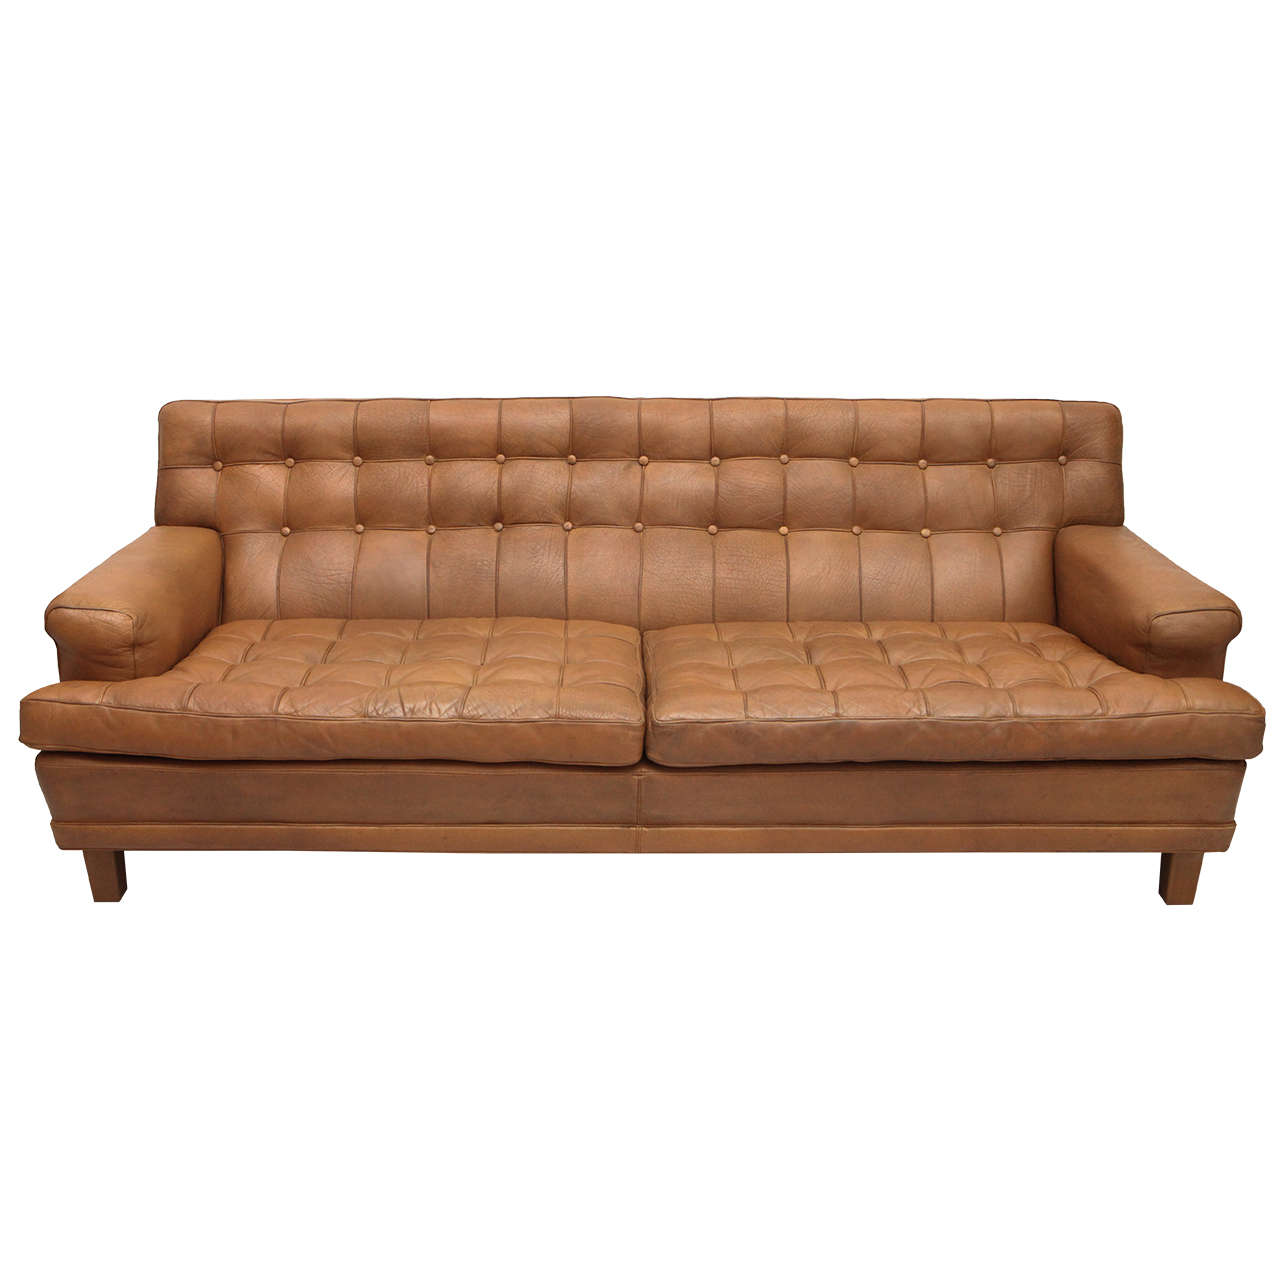 mid century tan leather tufted mexico sofa by arne norell. Black Bedroom Furniture Sets. Home Design Ideas